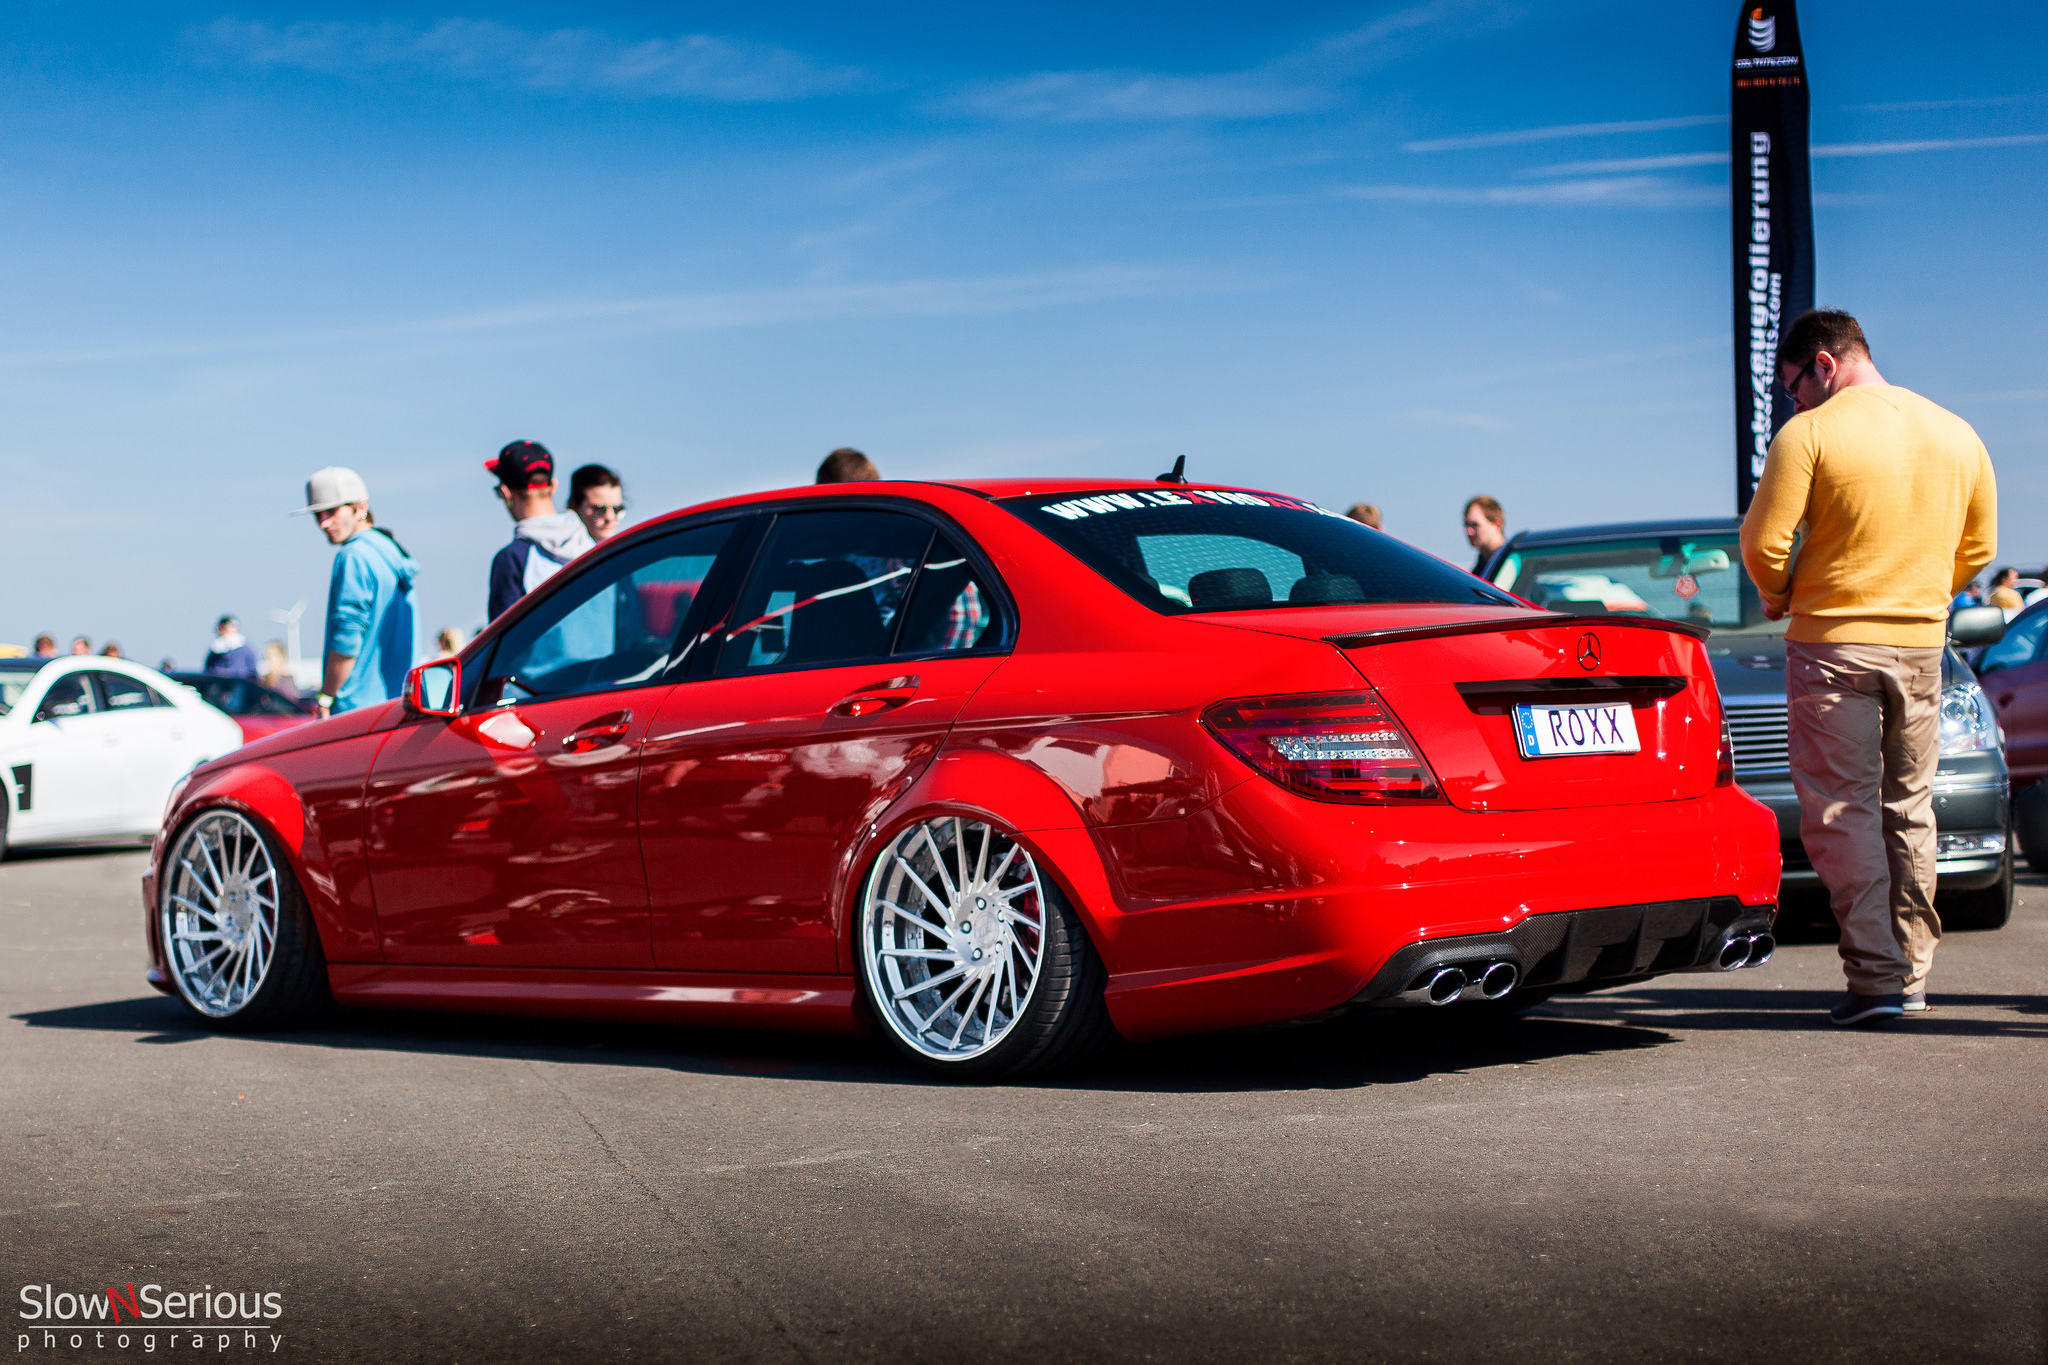 Mercedes Benz C63 Amg 2015 Red | www.pixshark.com - Images ...